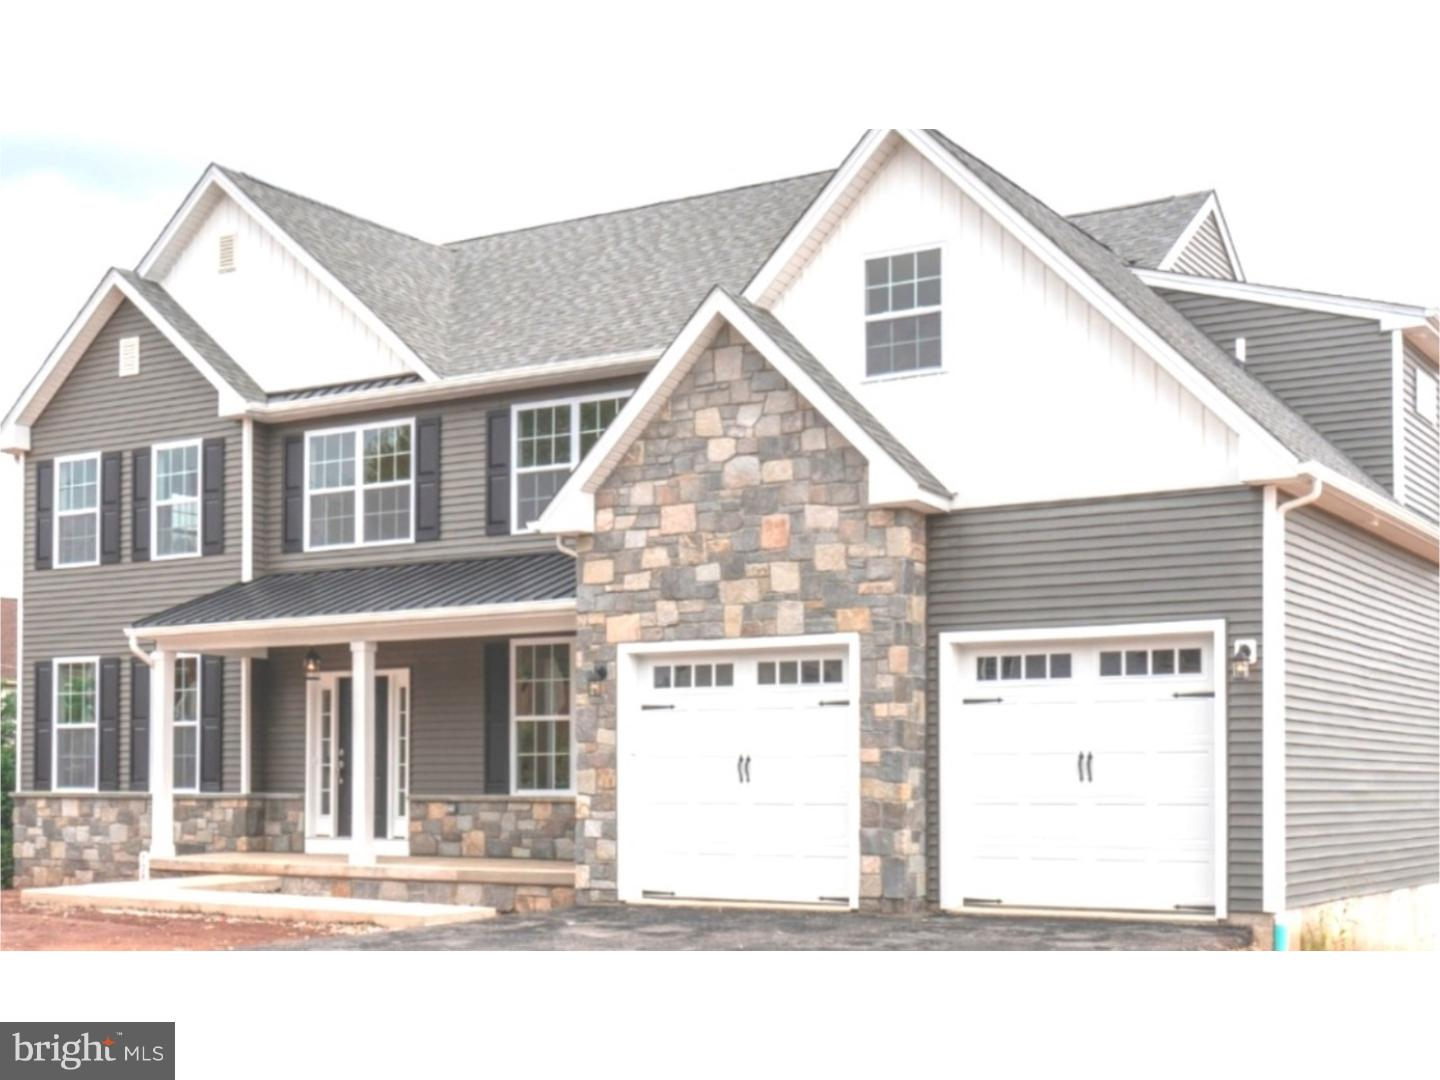 790 CALEY ROAD, KING OF PRUSSIA, PA 19406